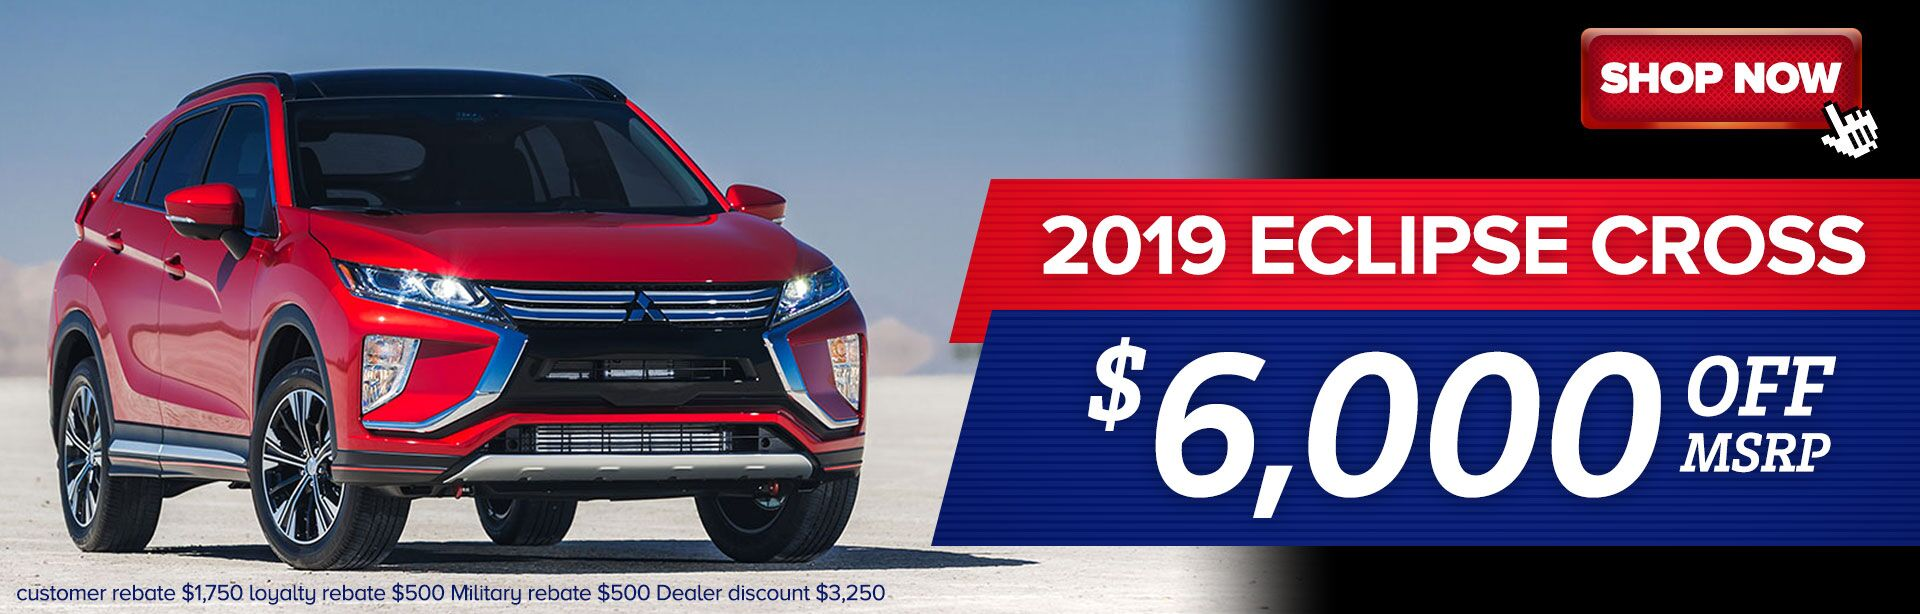 2019 Eclipse Cross